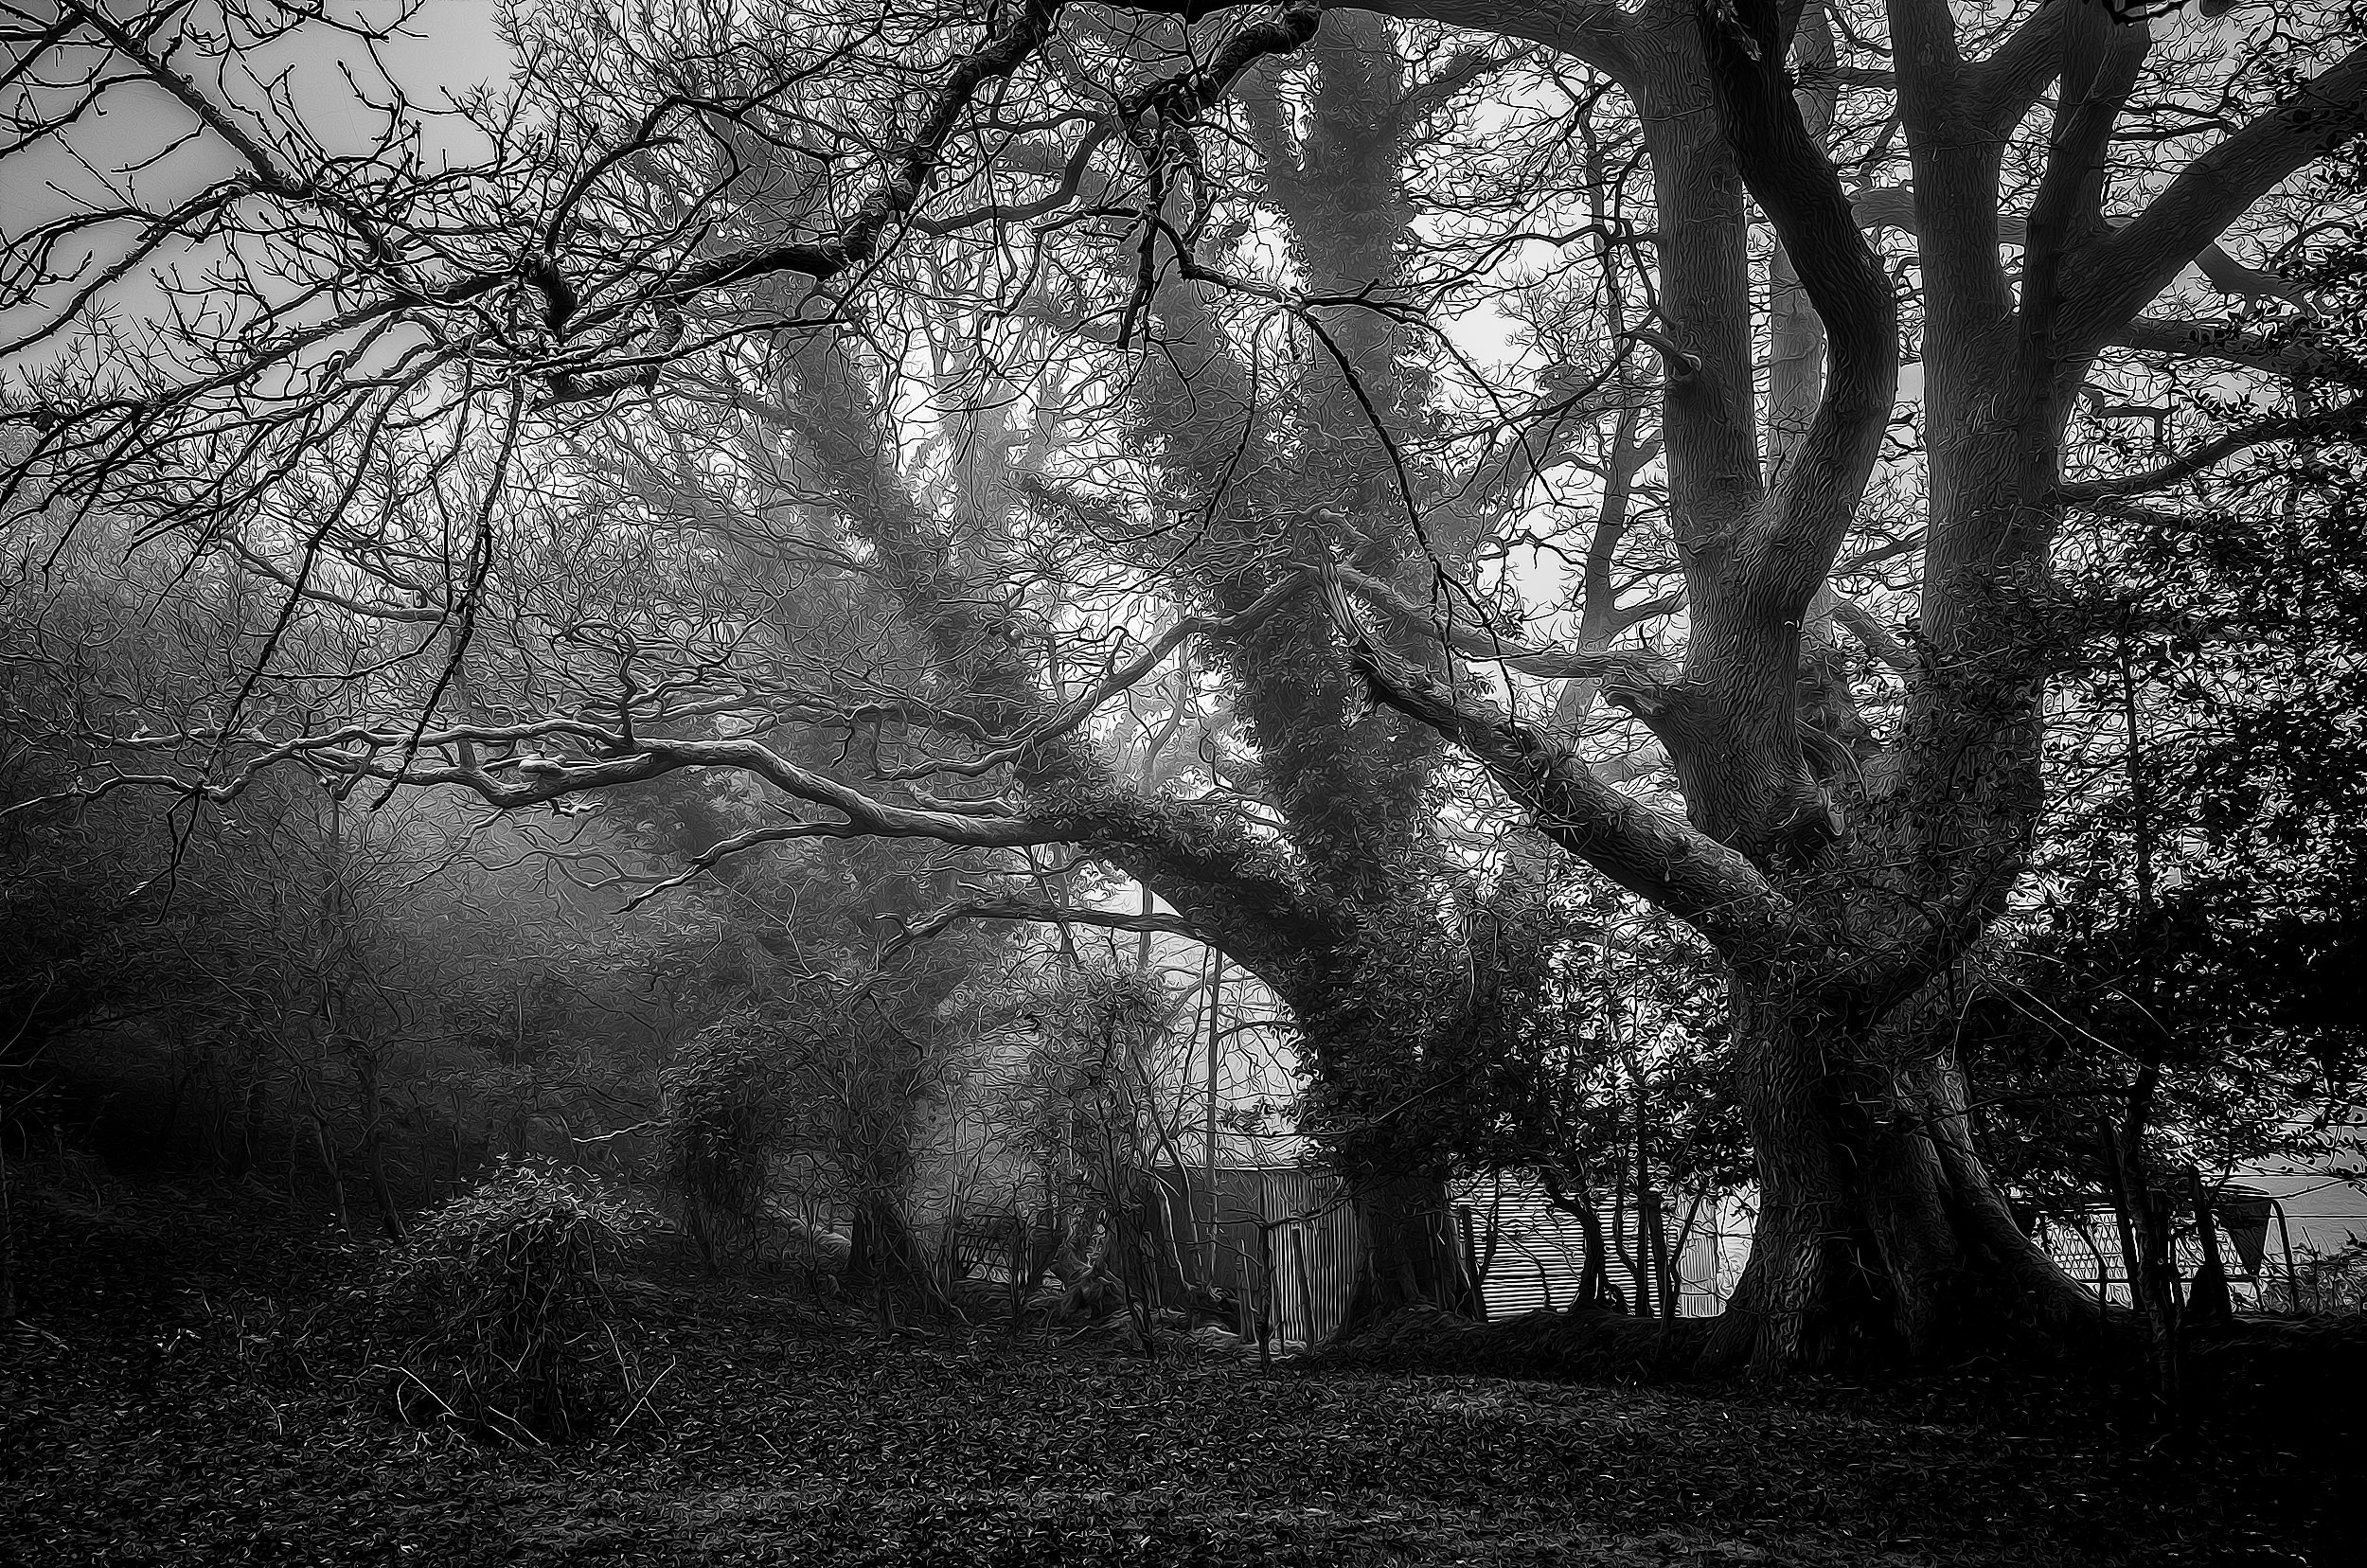 Energy could be stored within a tree. Ancient trees photo by  Richard Loader .